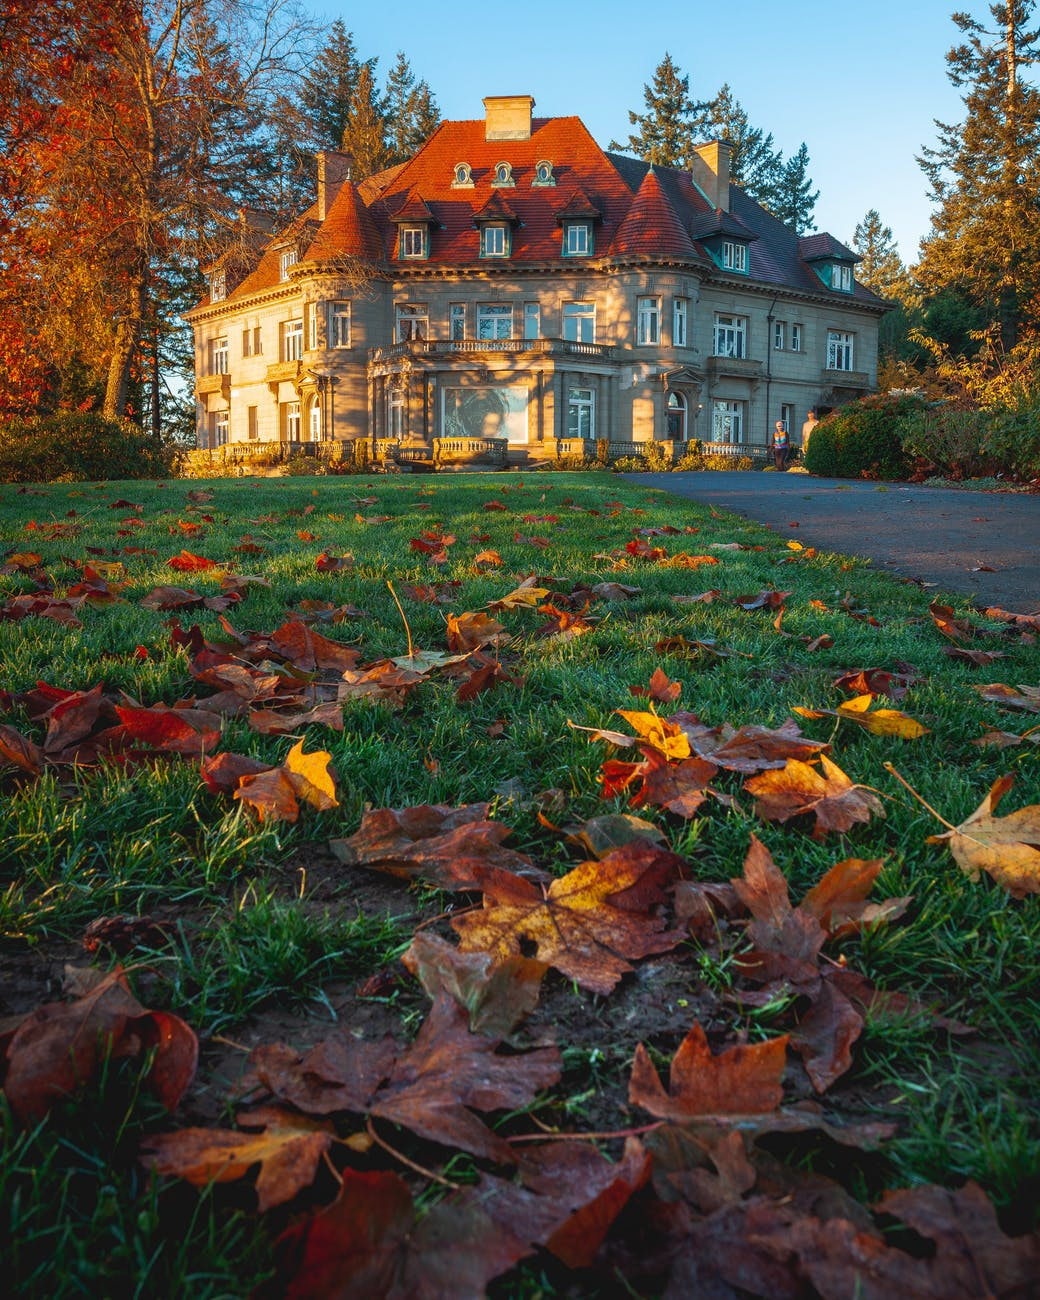 Pittock Mansion - Things to do in Portland this weekend